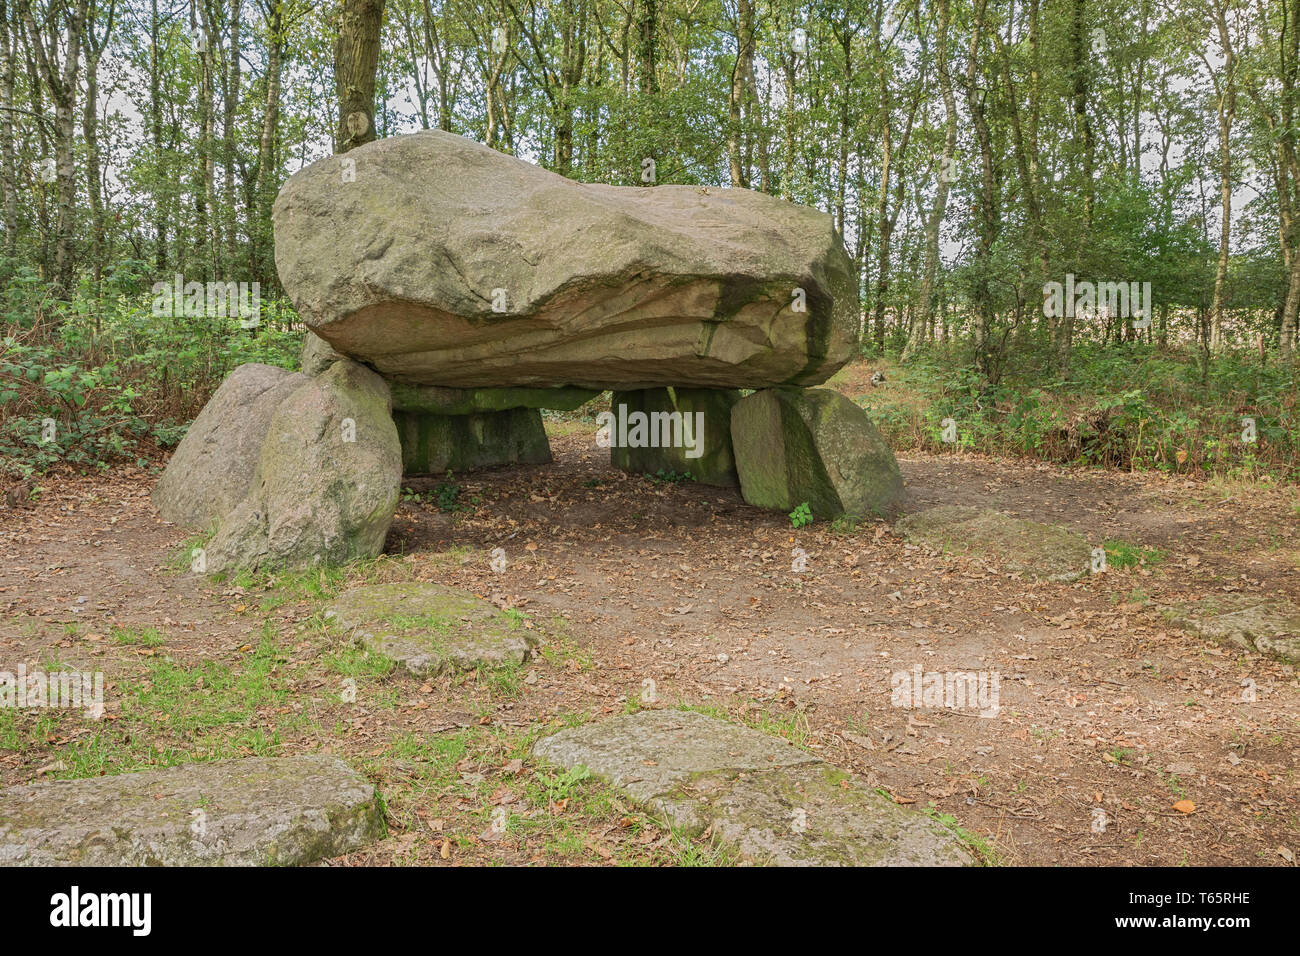 Looking at the inside of Dolmen G1 in the vicinity of Noordlaren - Stock Image